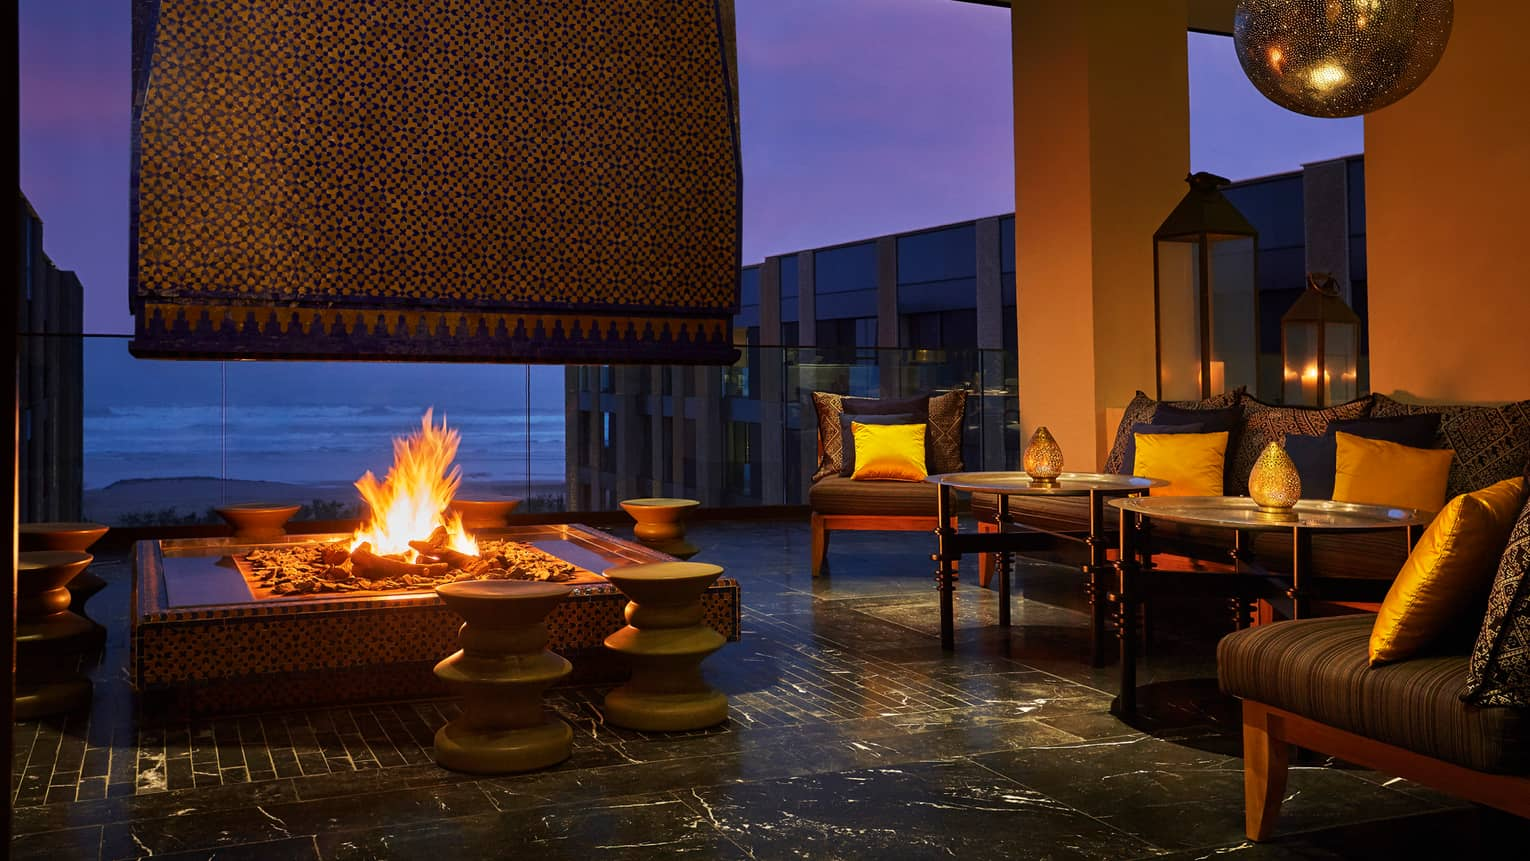 Patios sofas, beaches around large outdoor fireplace on Mint terrace at night